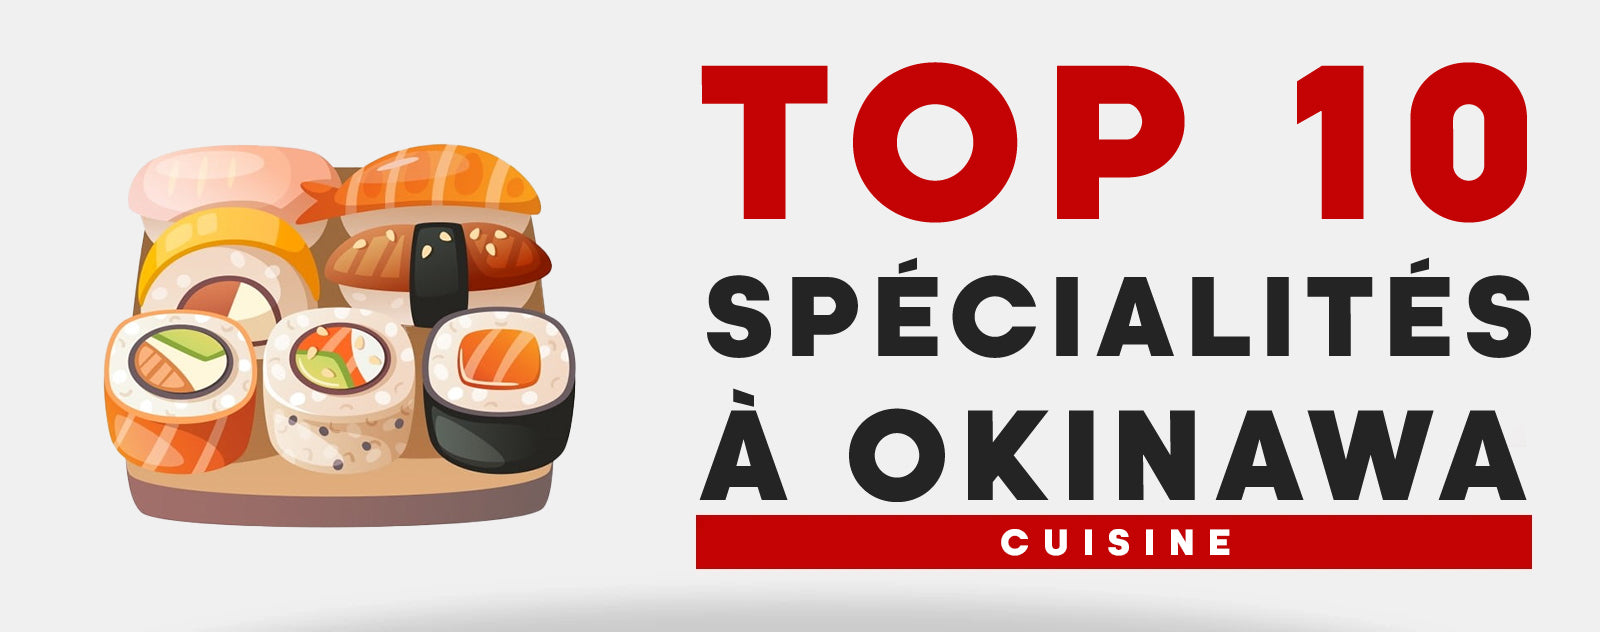 Top 10 Specialites Locales a Okinawa